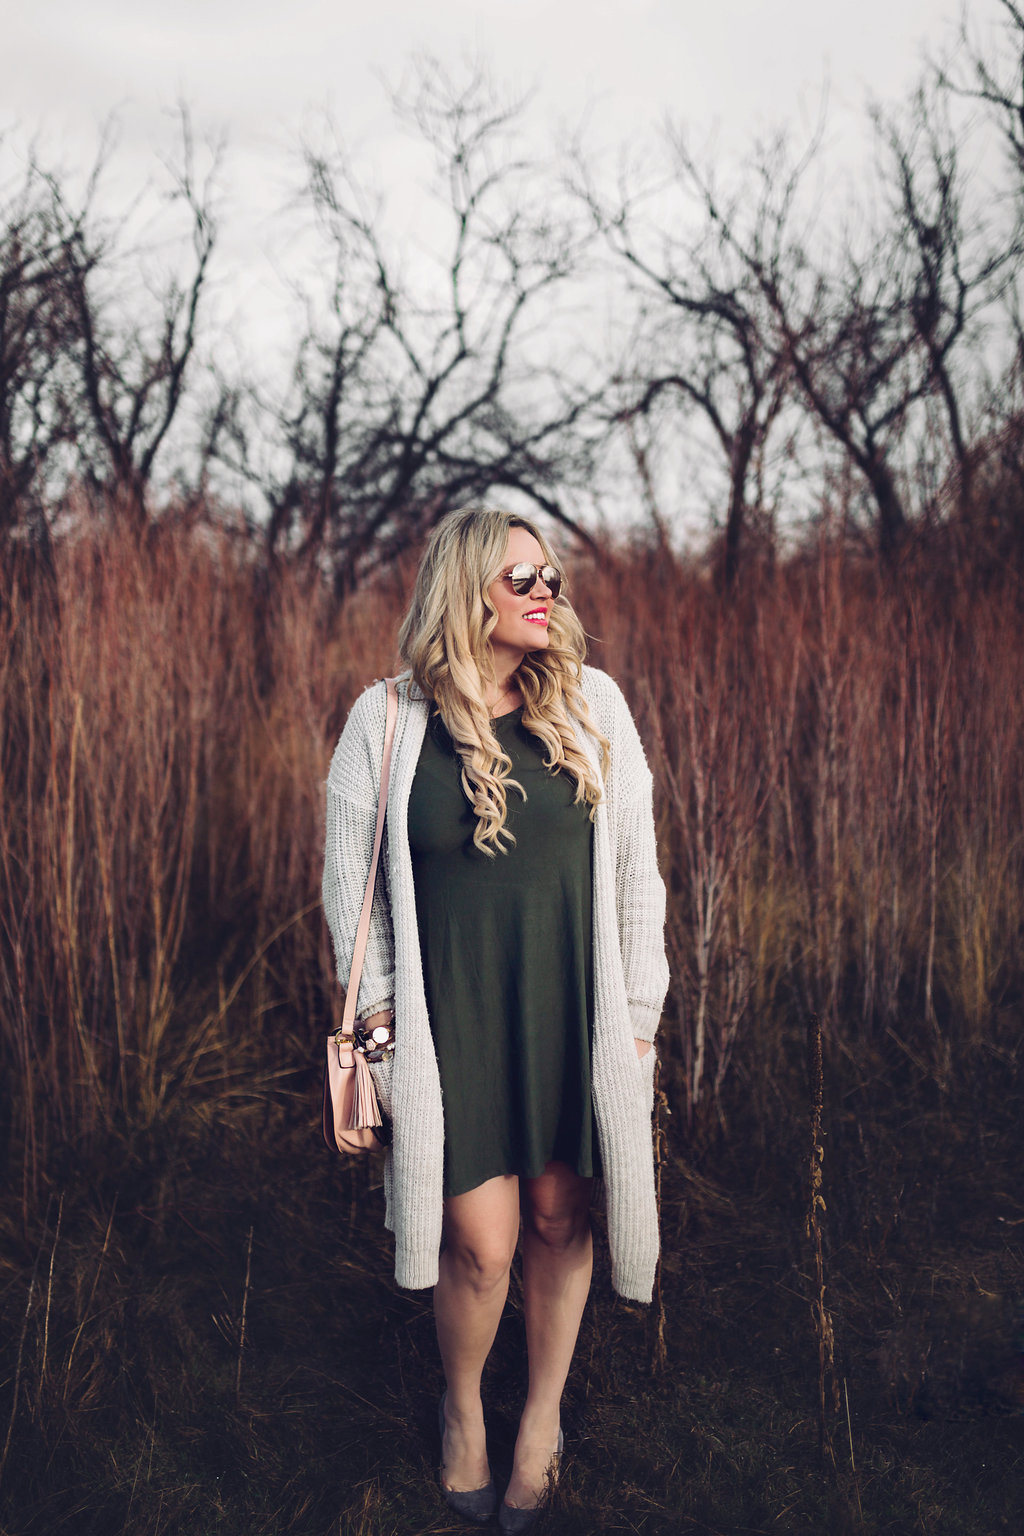 Olive Dress + Slouchy Sweater xx Ross Dress For Less graphic